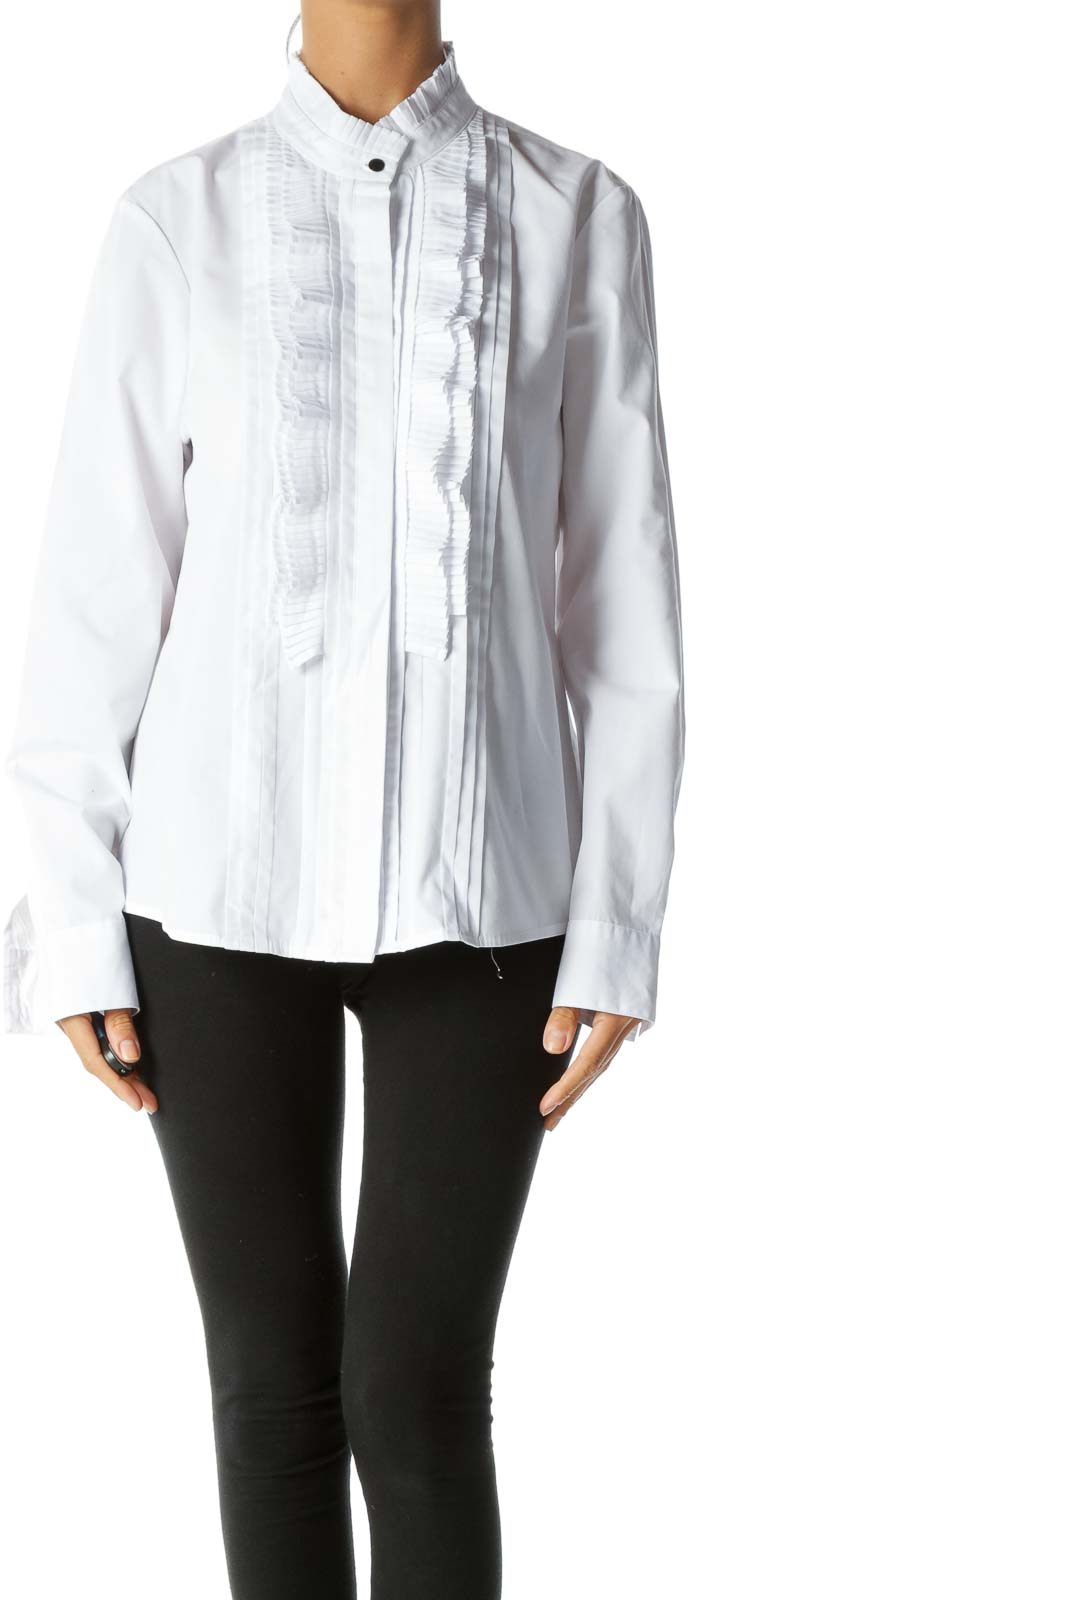 White Round Neck Pleated Trimming Details Shirt Front